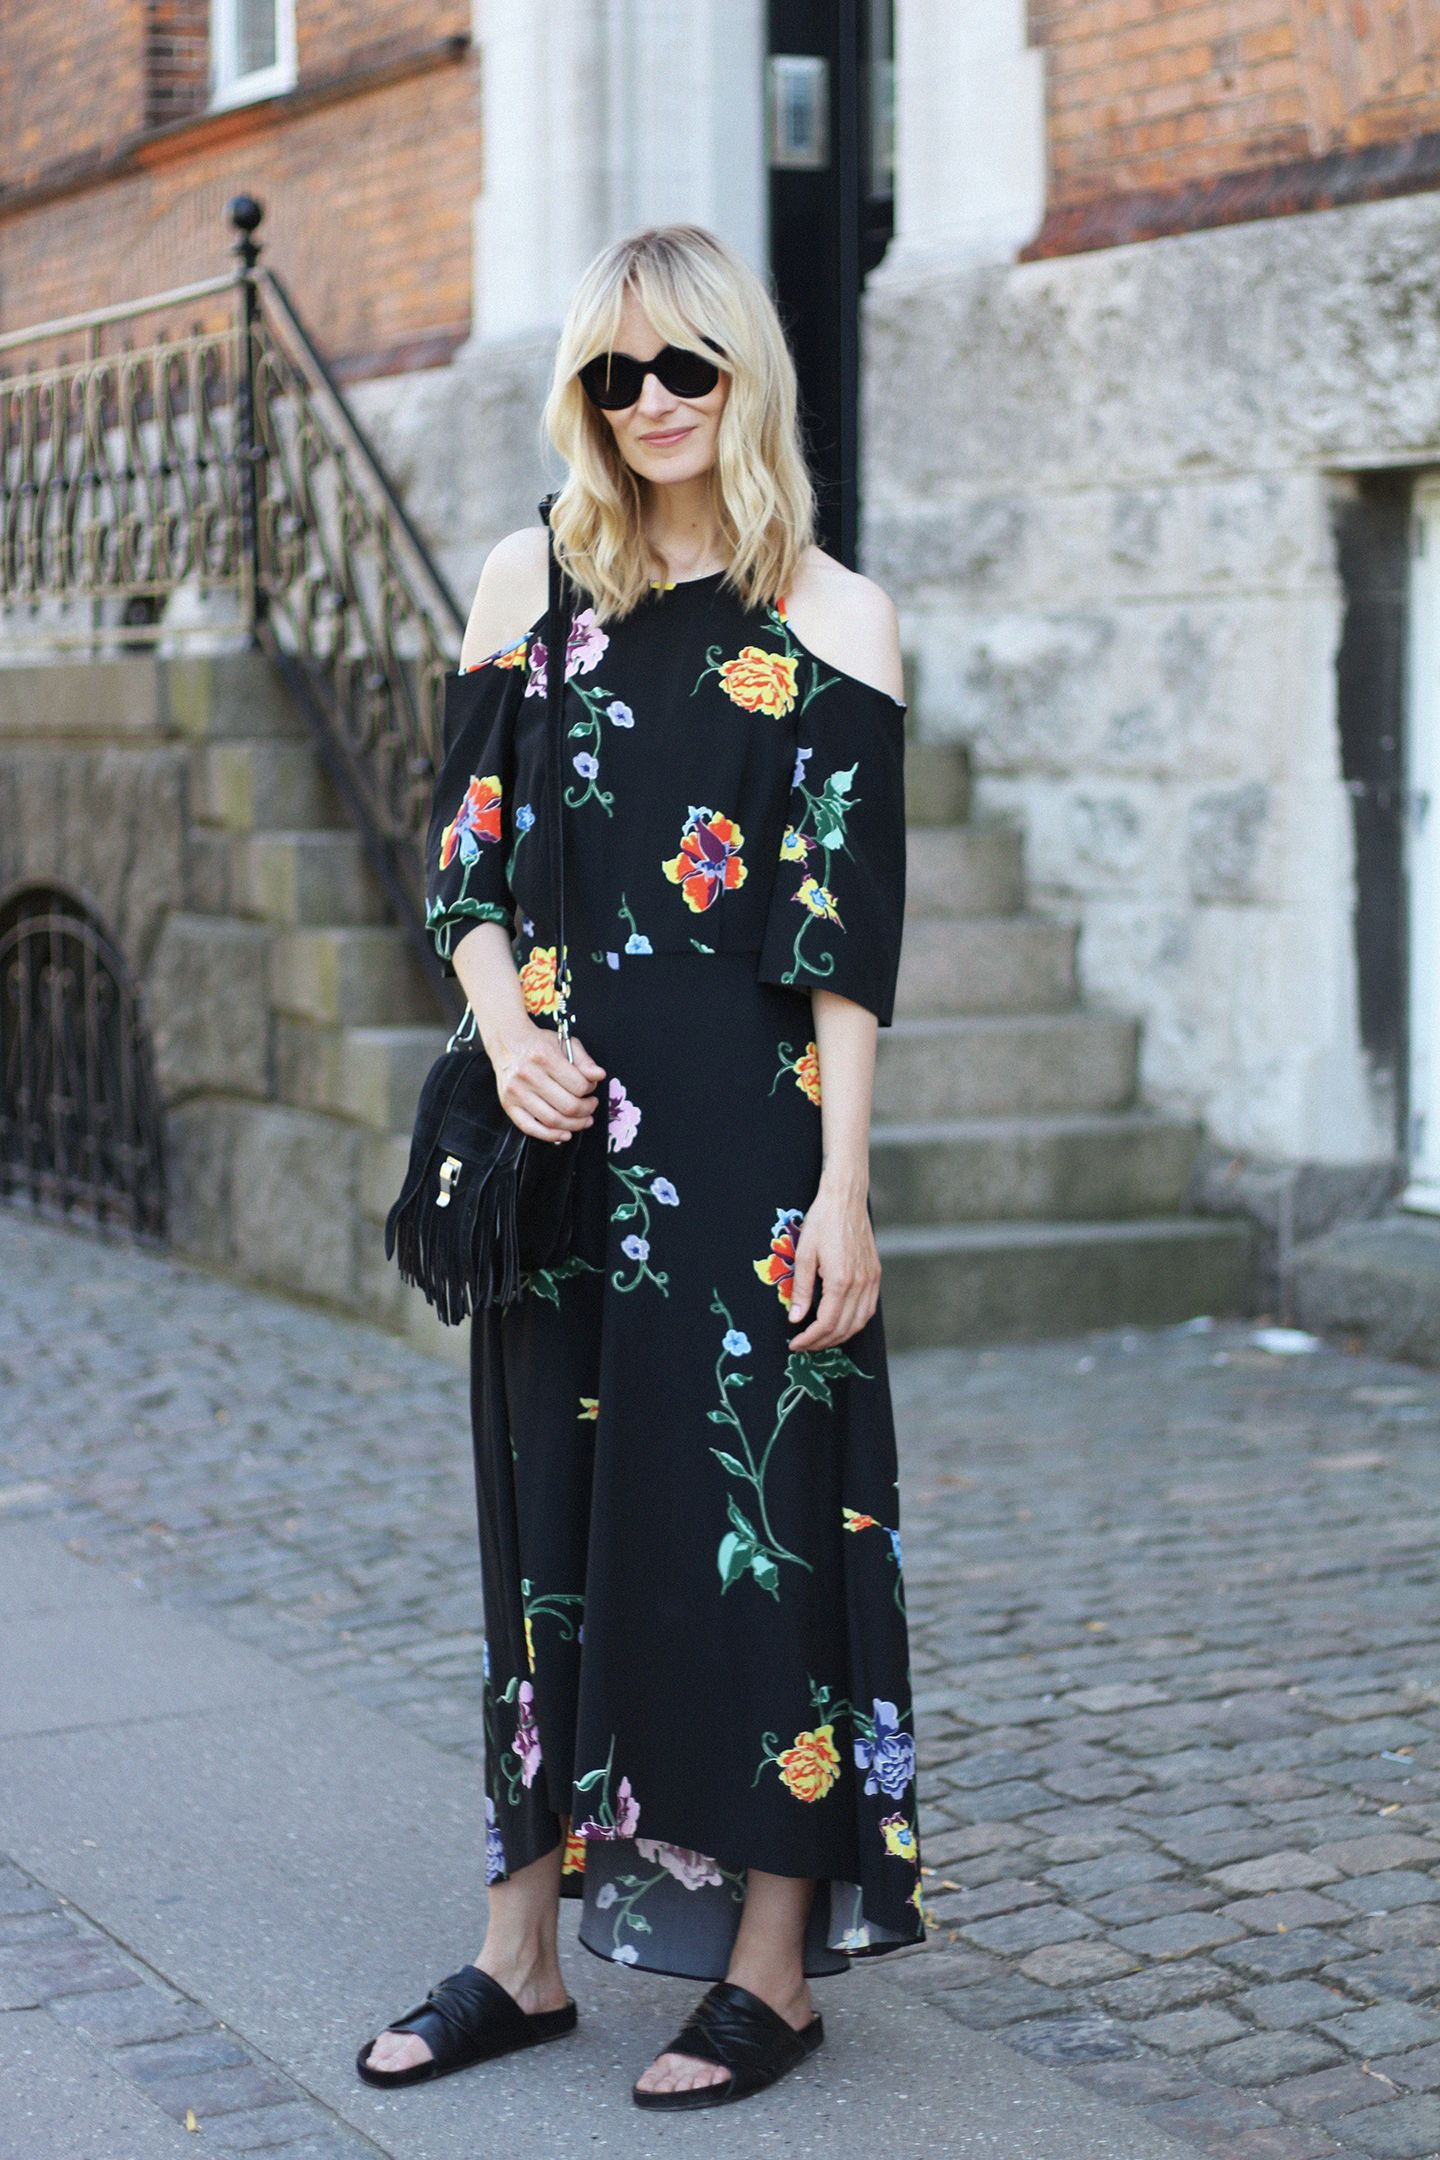 OOTD: Blame It On Fashion Mixes Classic Black with Fresh Florals #RueNow